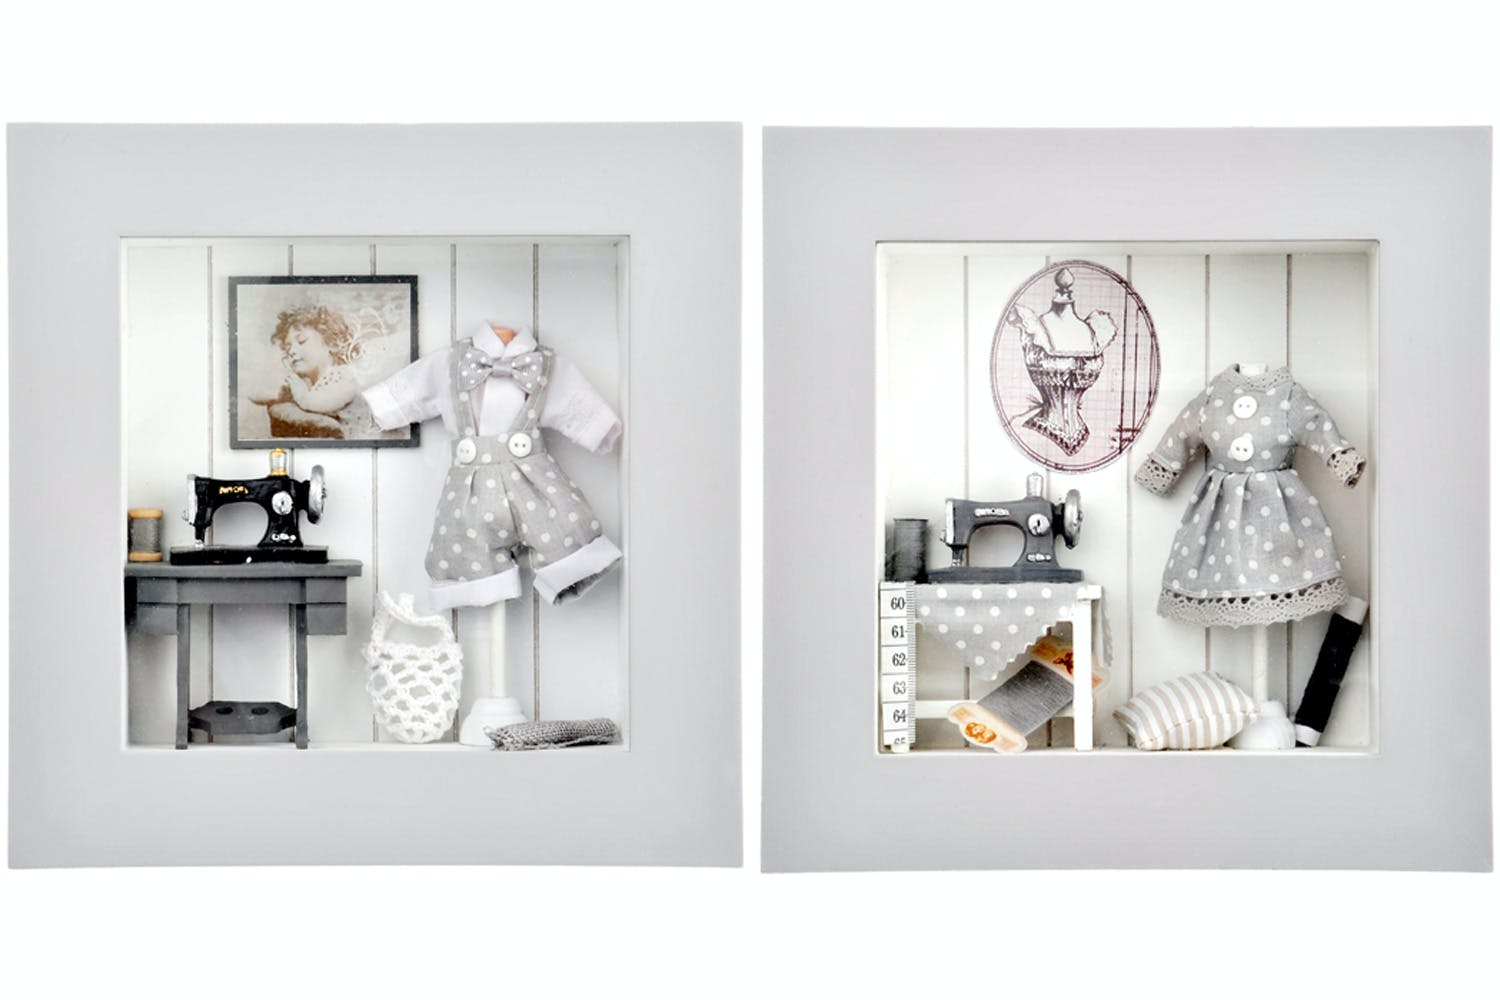 3d wall art in a frame shop at harvey norman ireland 3d wall art in a frame jeuxipadfo Choice Image